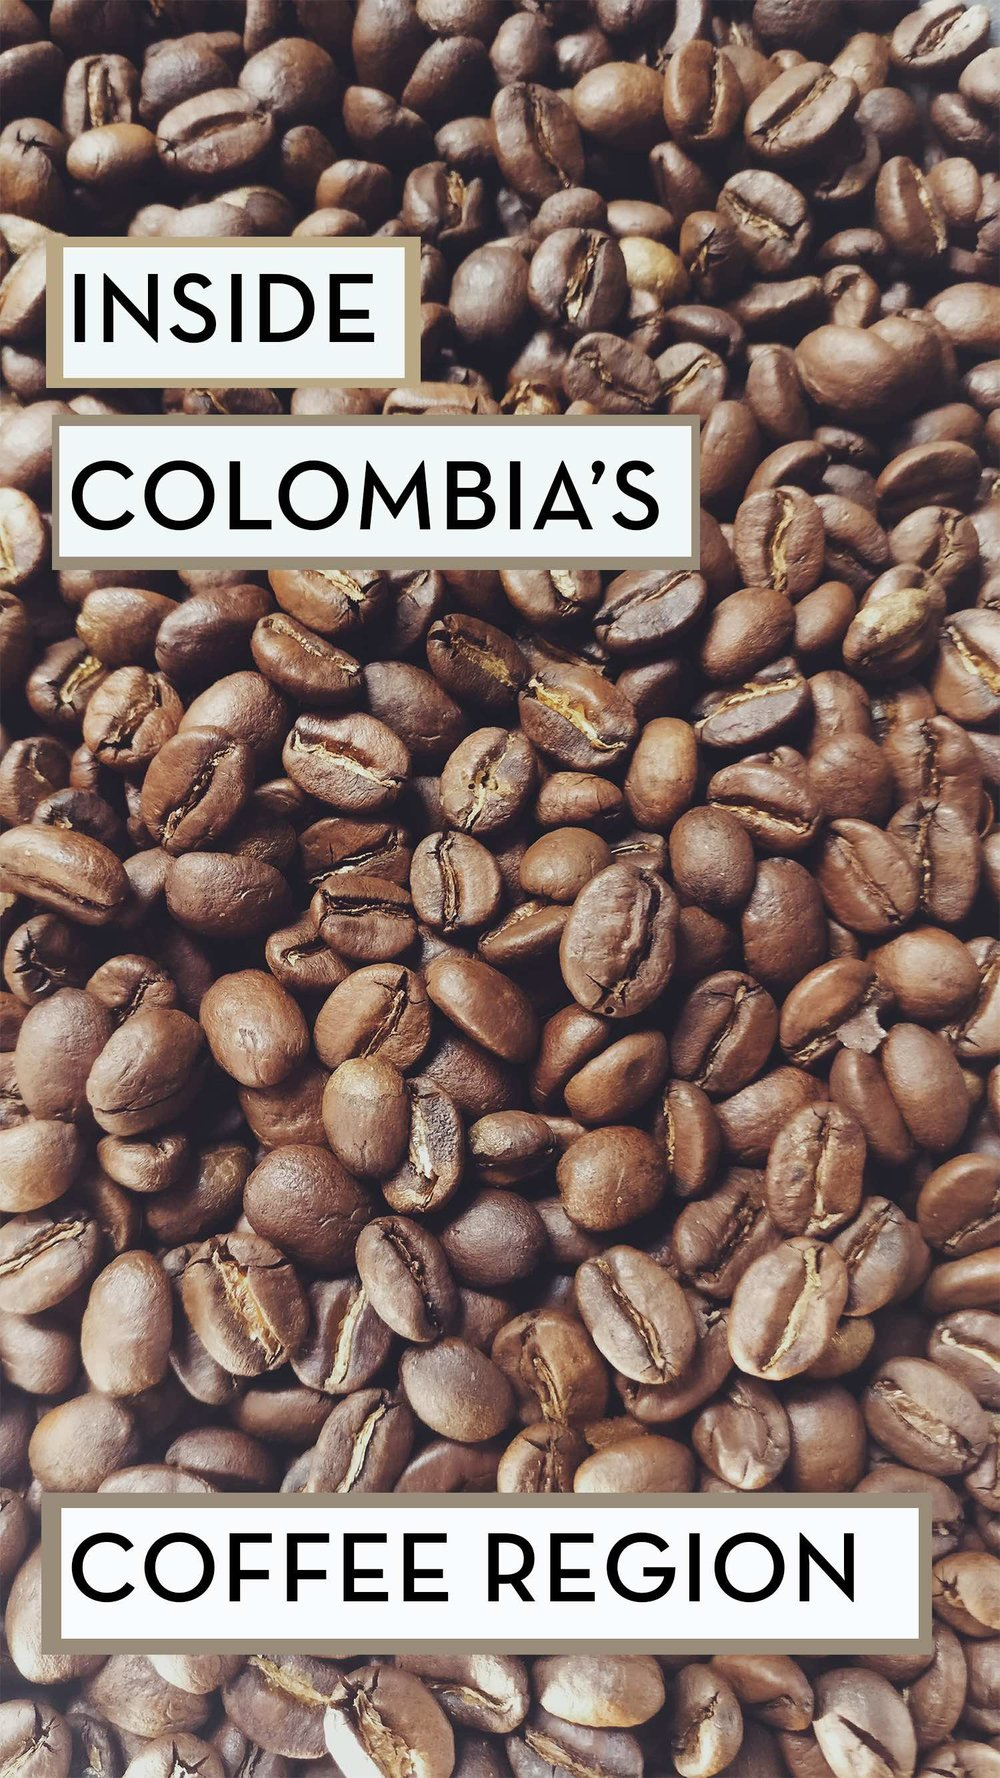 A Taste of Colombia's Rich Coffee Region